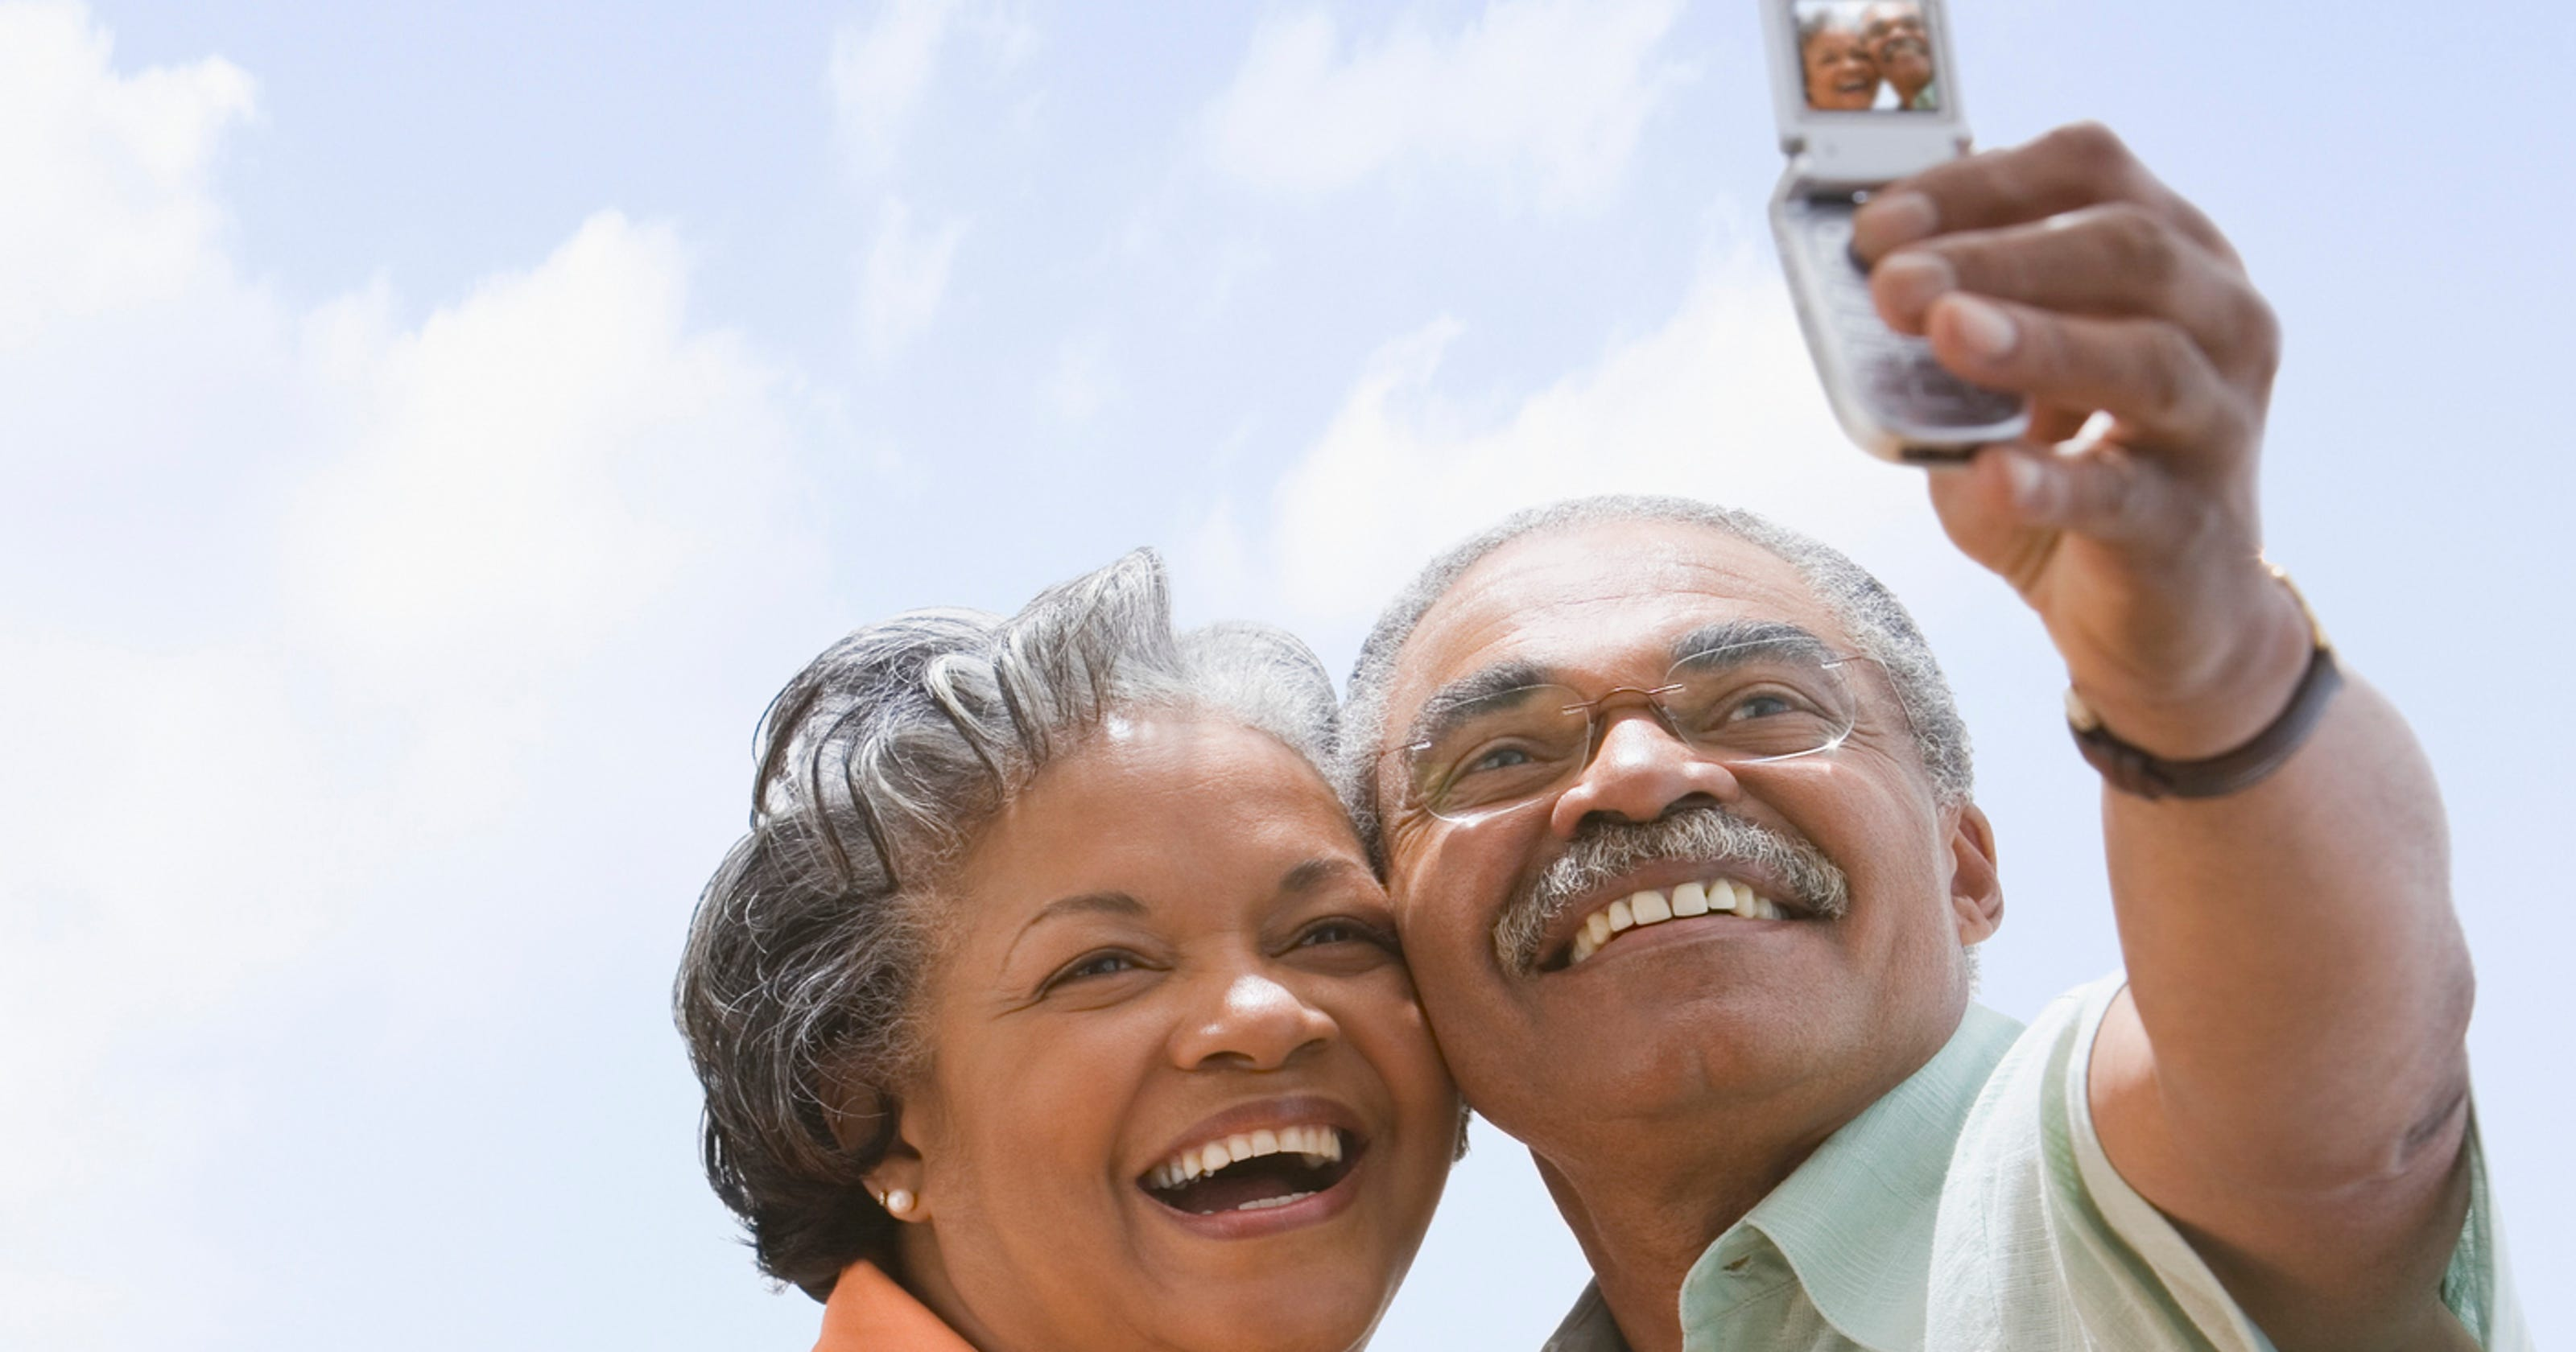 Simple smartphones available for seniors